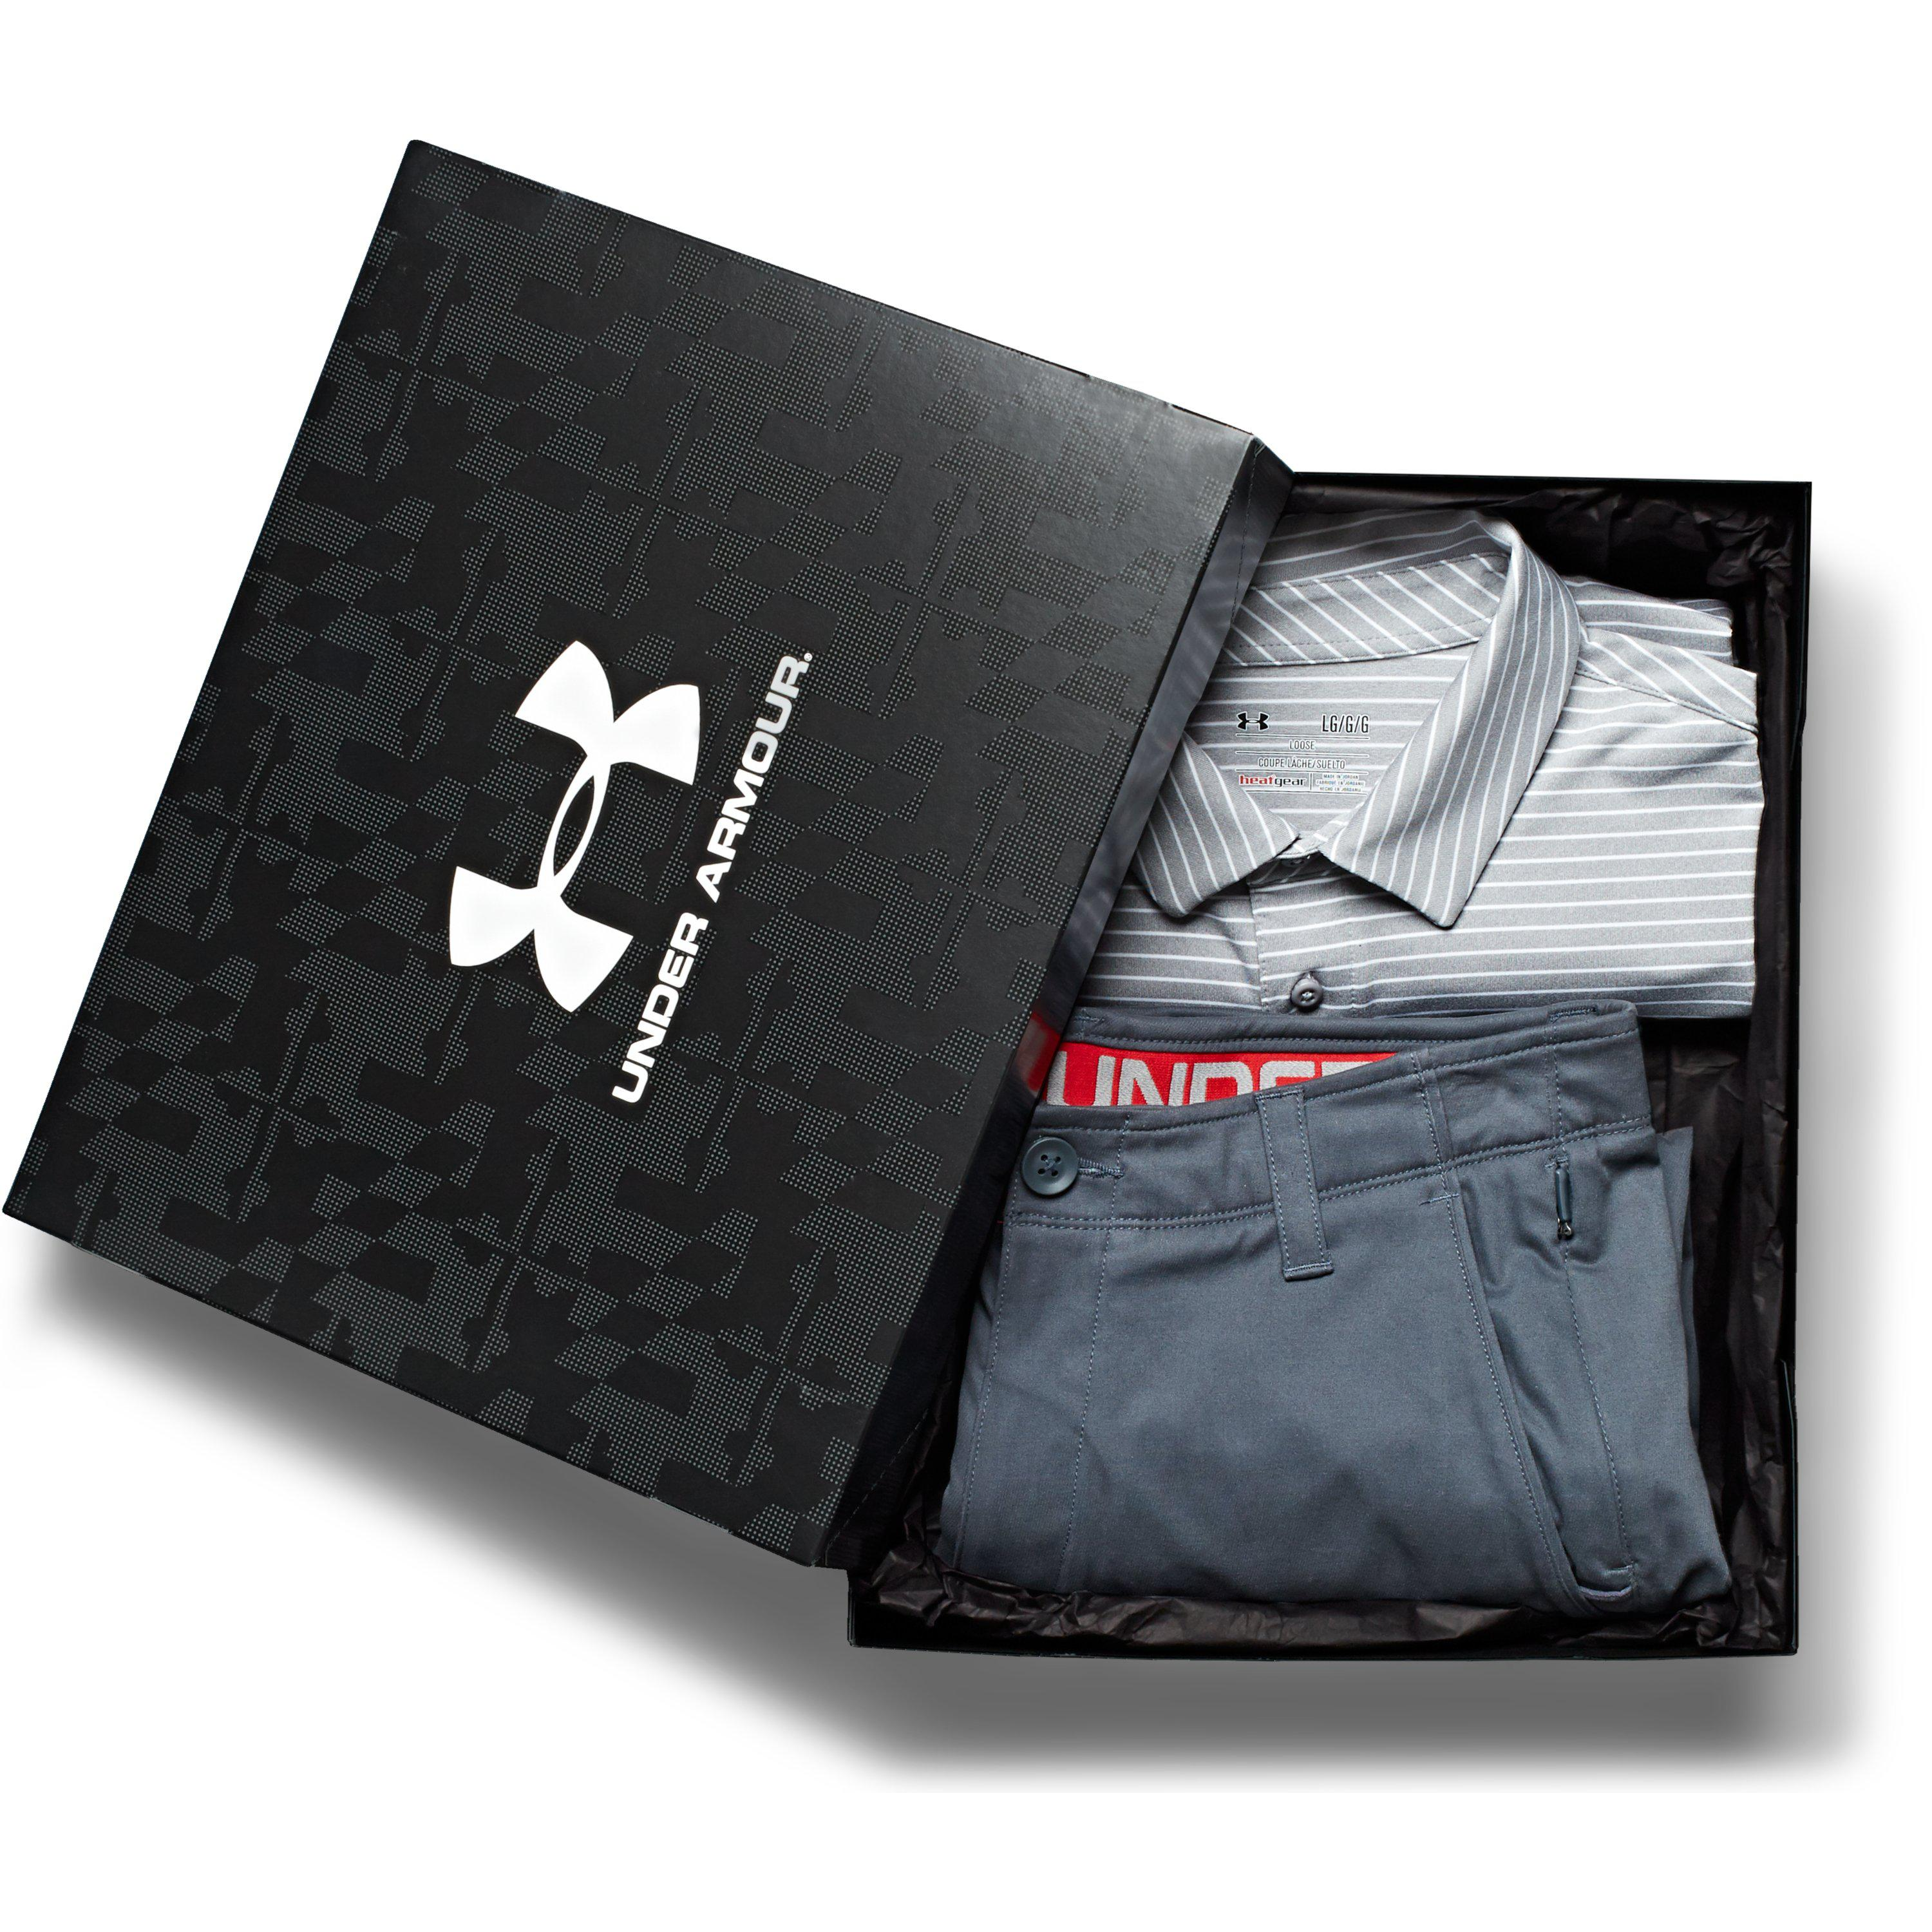 7f197f593a Under Armour Black Ua Giftbox Kit - Large for men